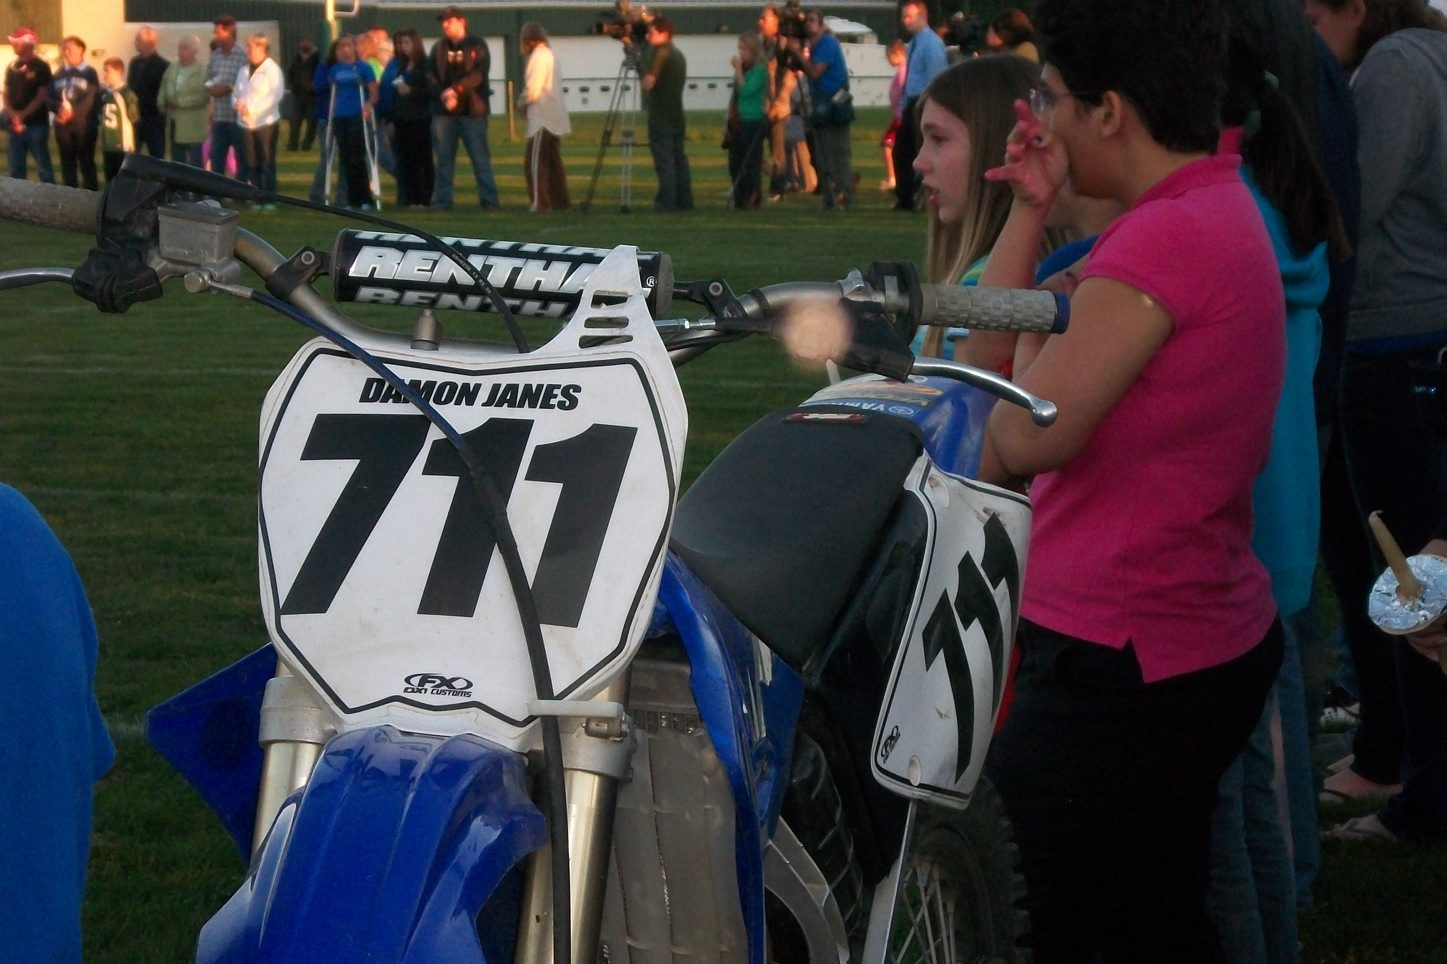 Damon's bike – number 711 – circled the school's football field and was parked near the 50-yard line.